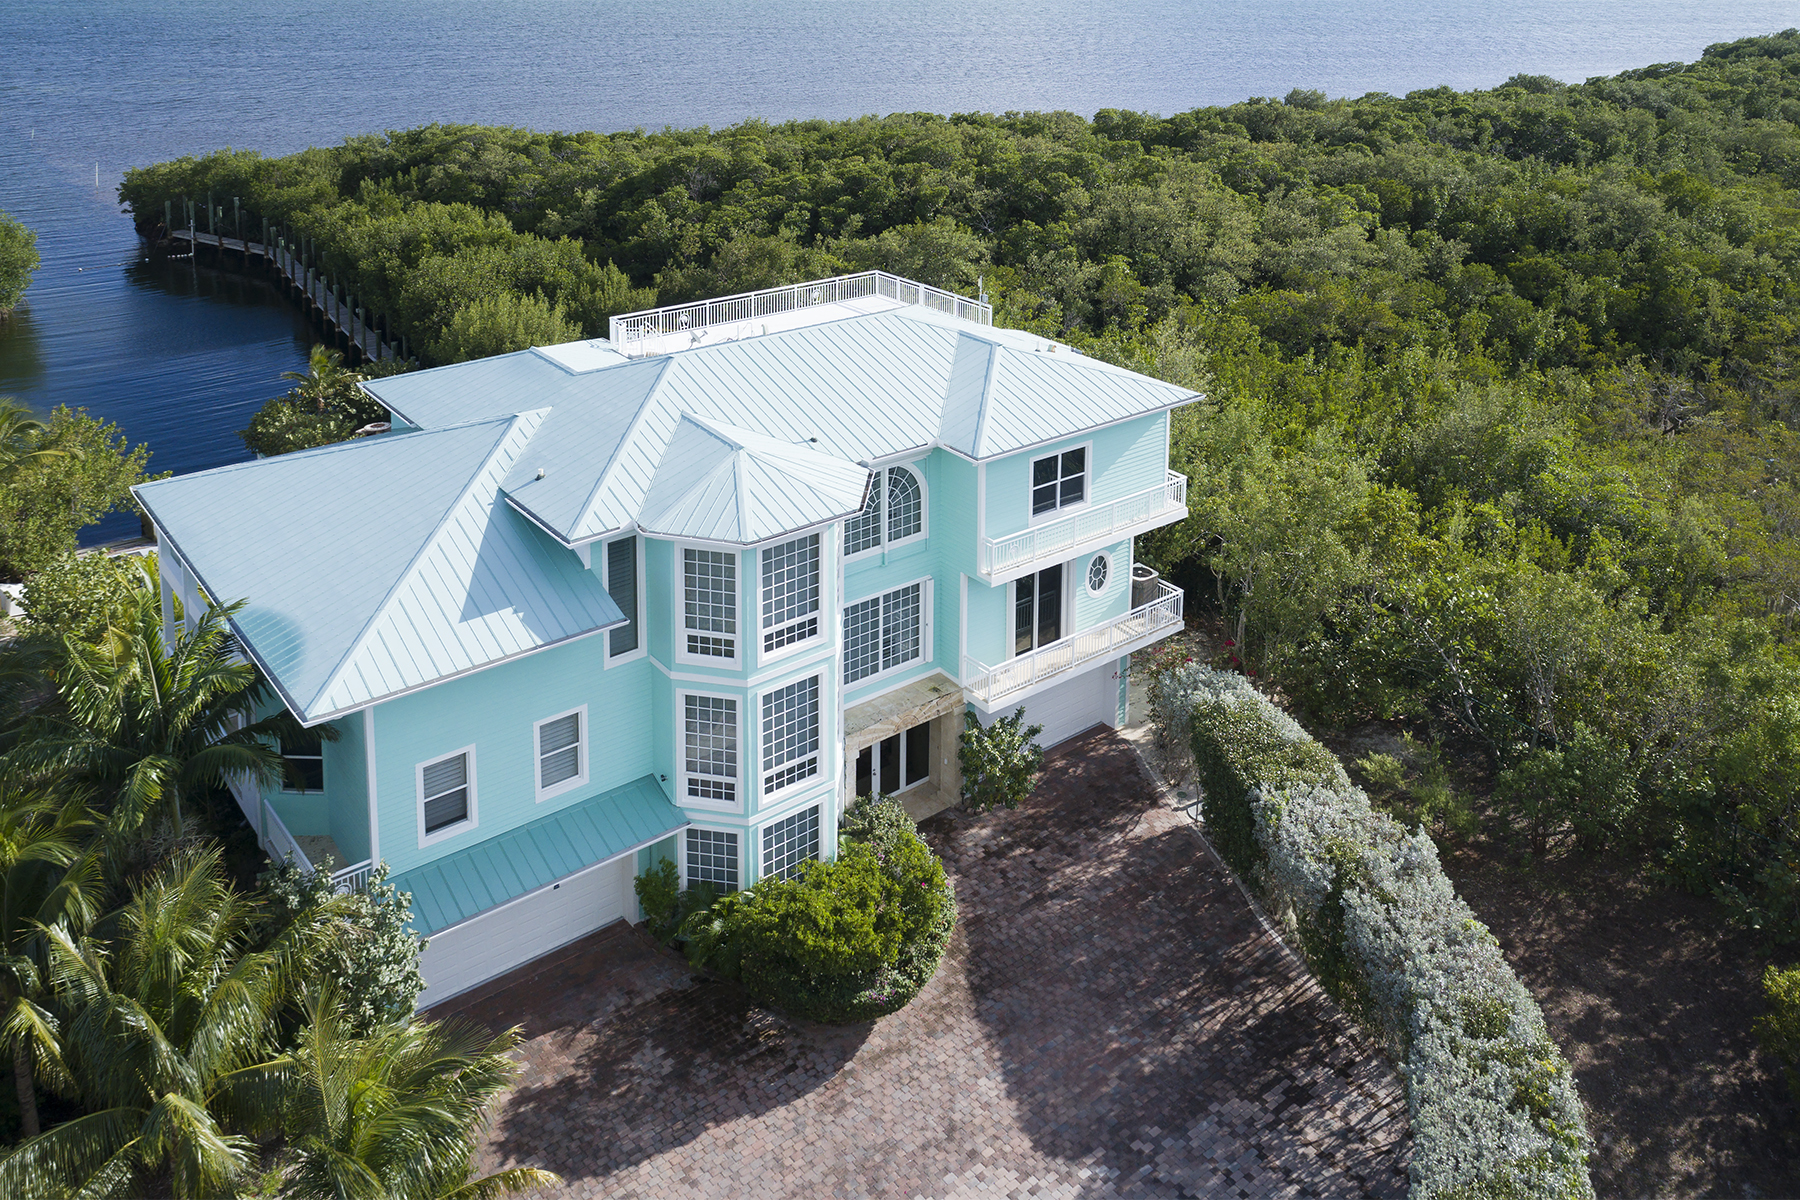 Villa per Vendita alle ore Grand Waterfront Home with Guest House 97251 Overseas Highway South Side Key Largo, Florida, 33037 Stati Uniti